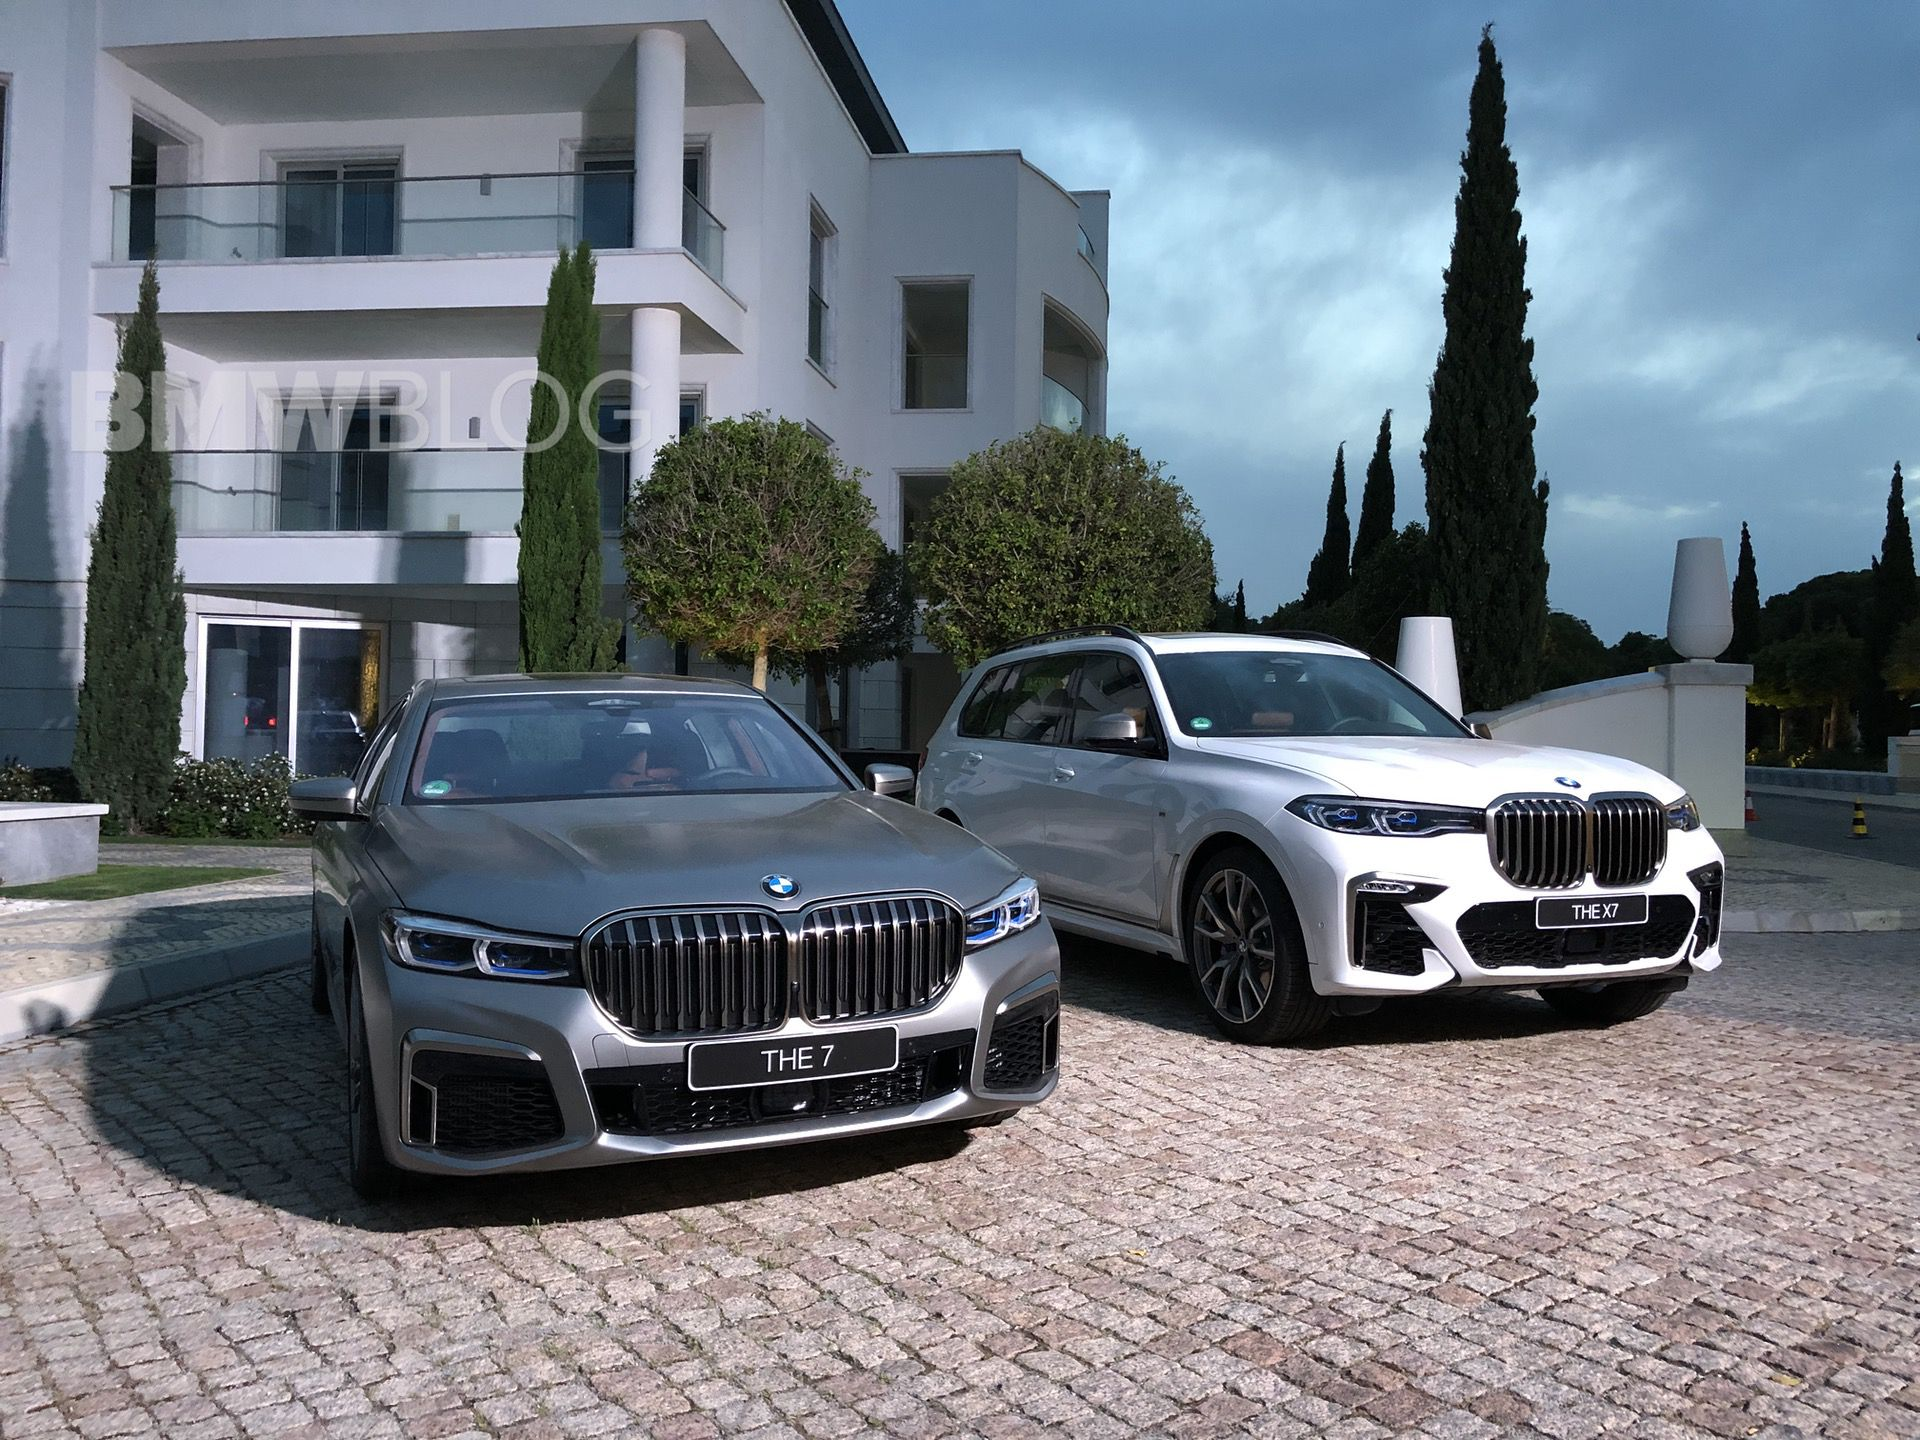 The Grill War Bmw 7 Series Facelift Vs Bmw X7